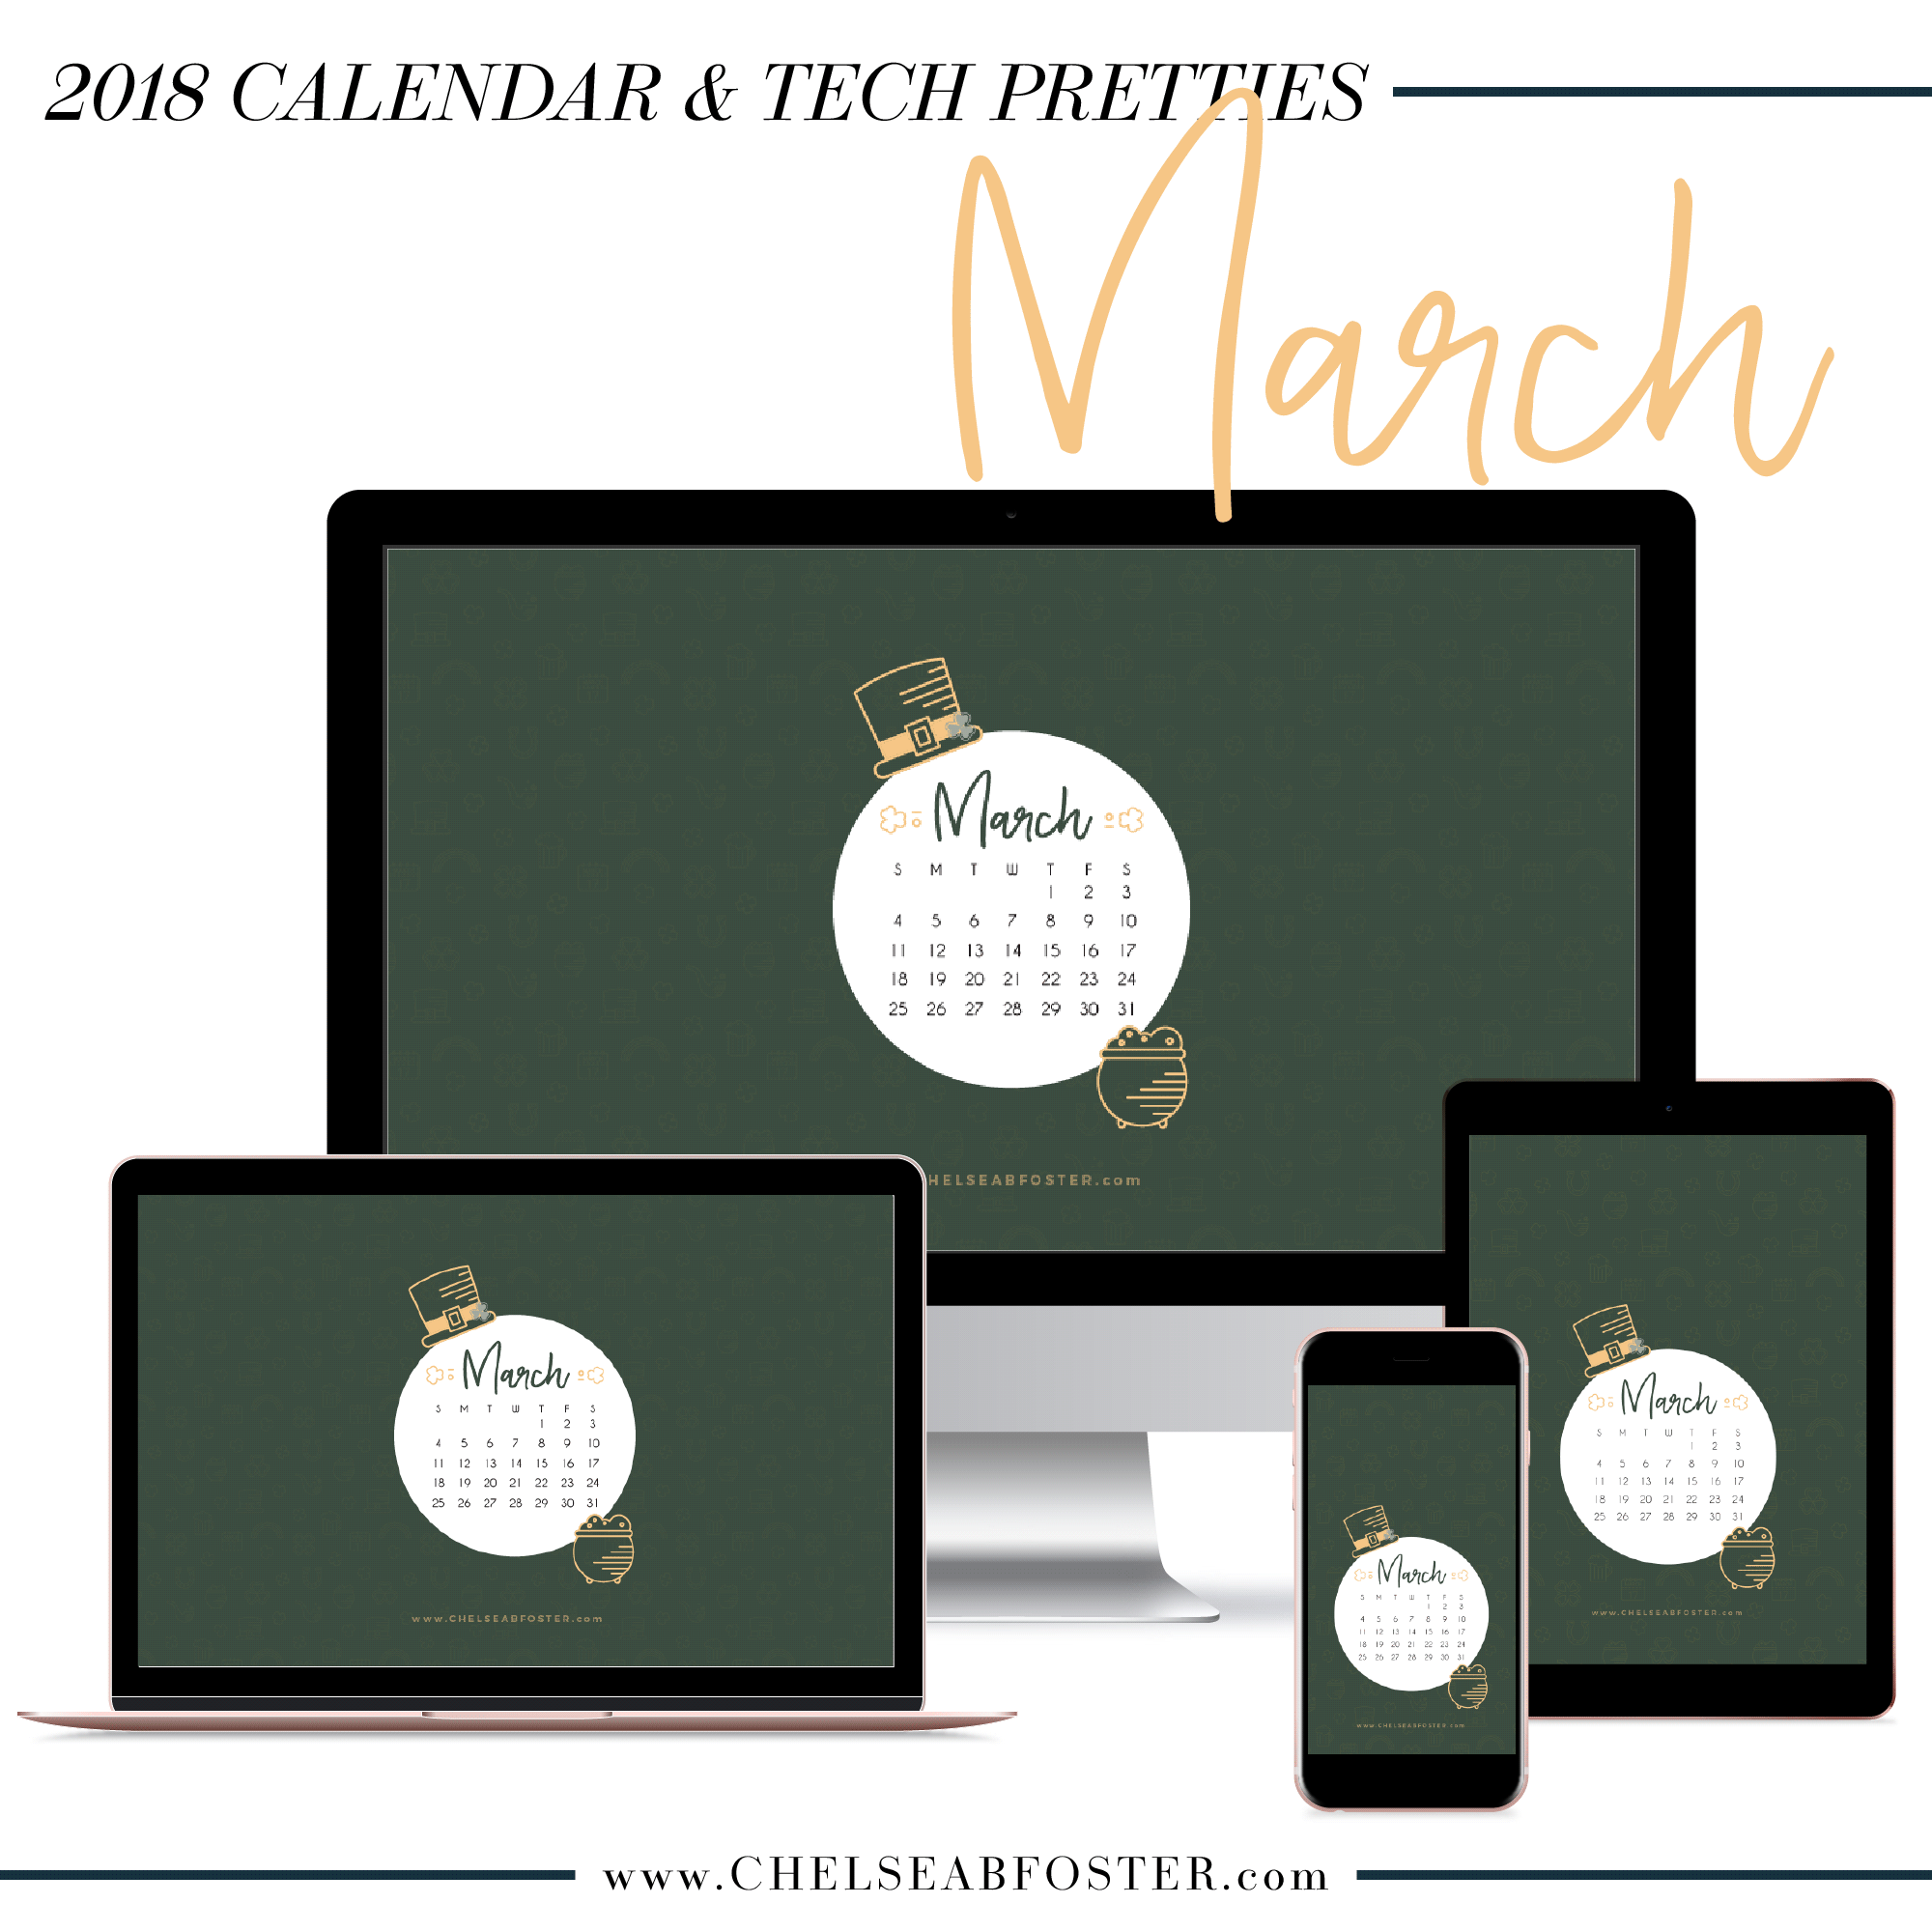 2018 March Tech Pretties - PeonyPrintshop.com is now ChelseaBFoster.com